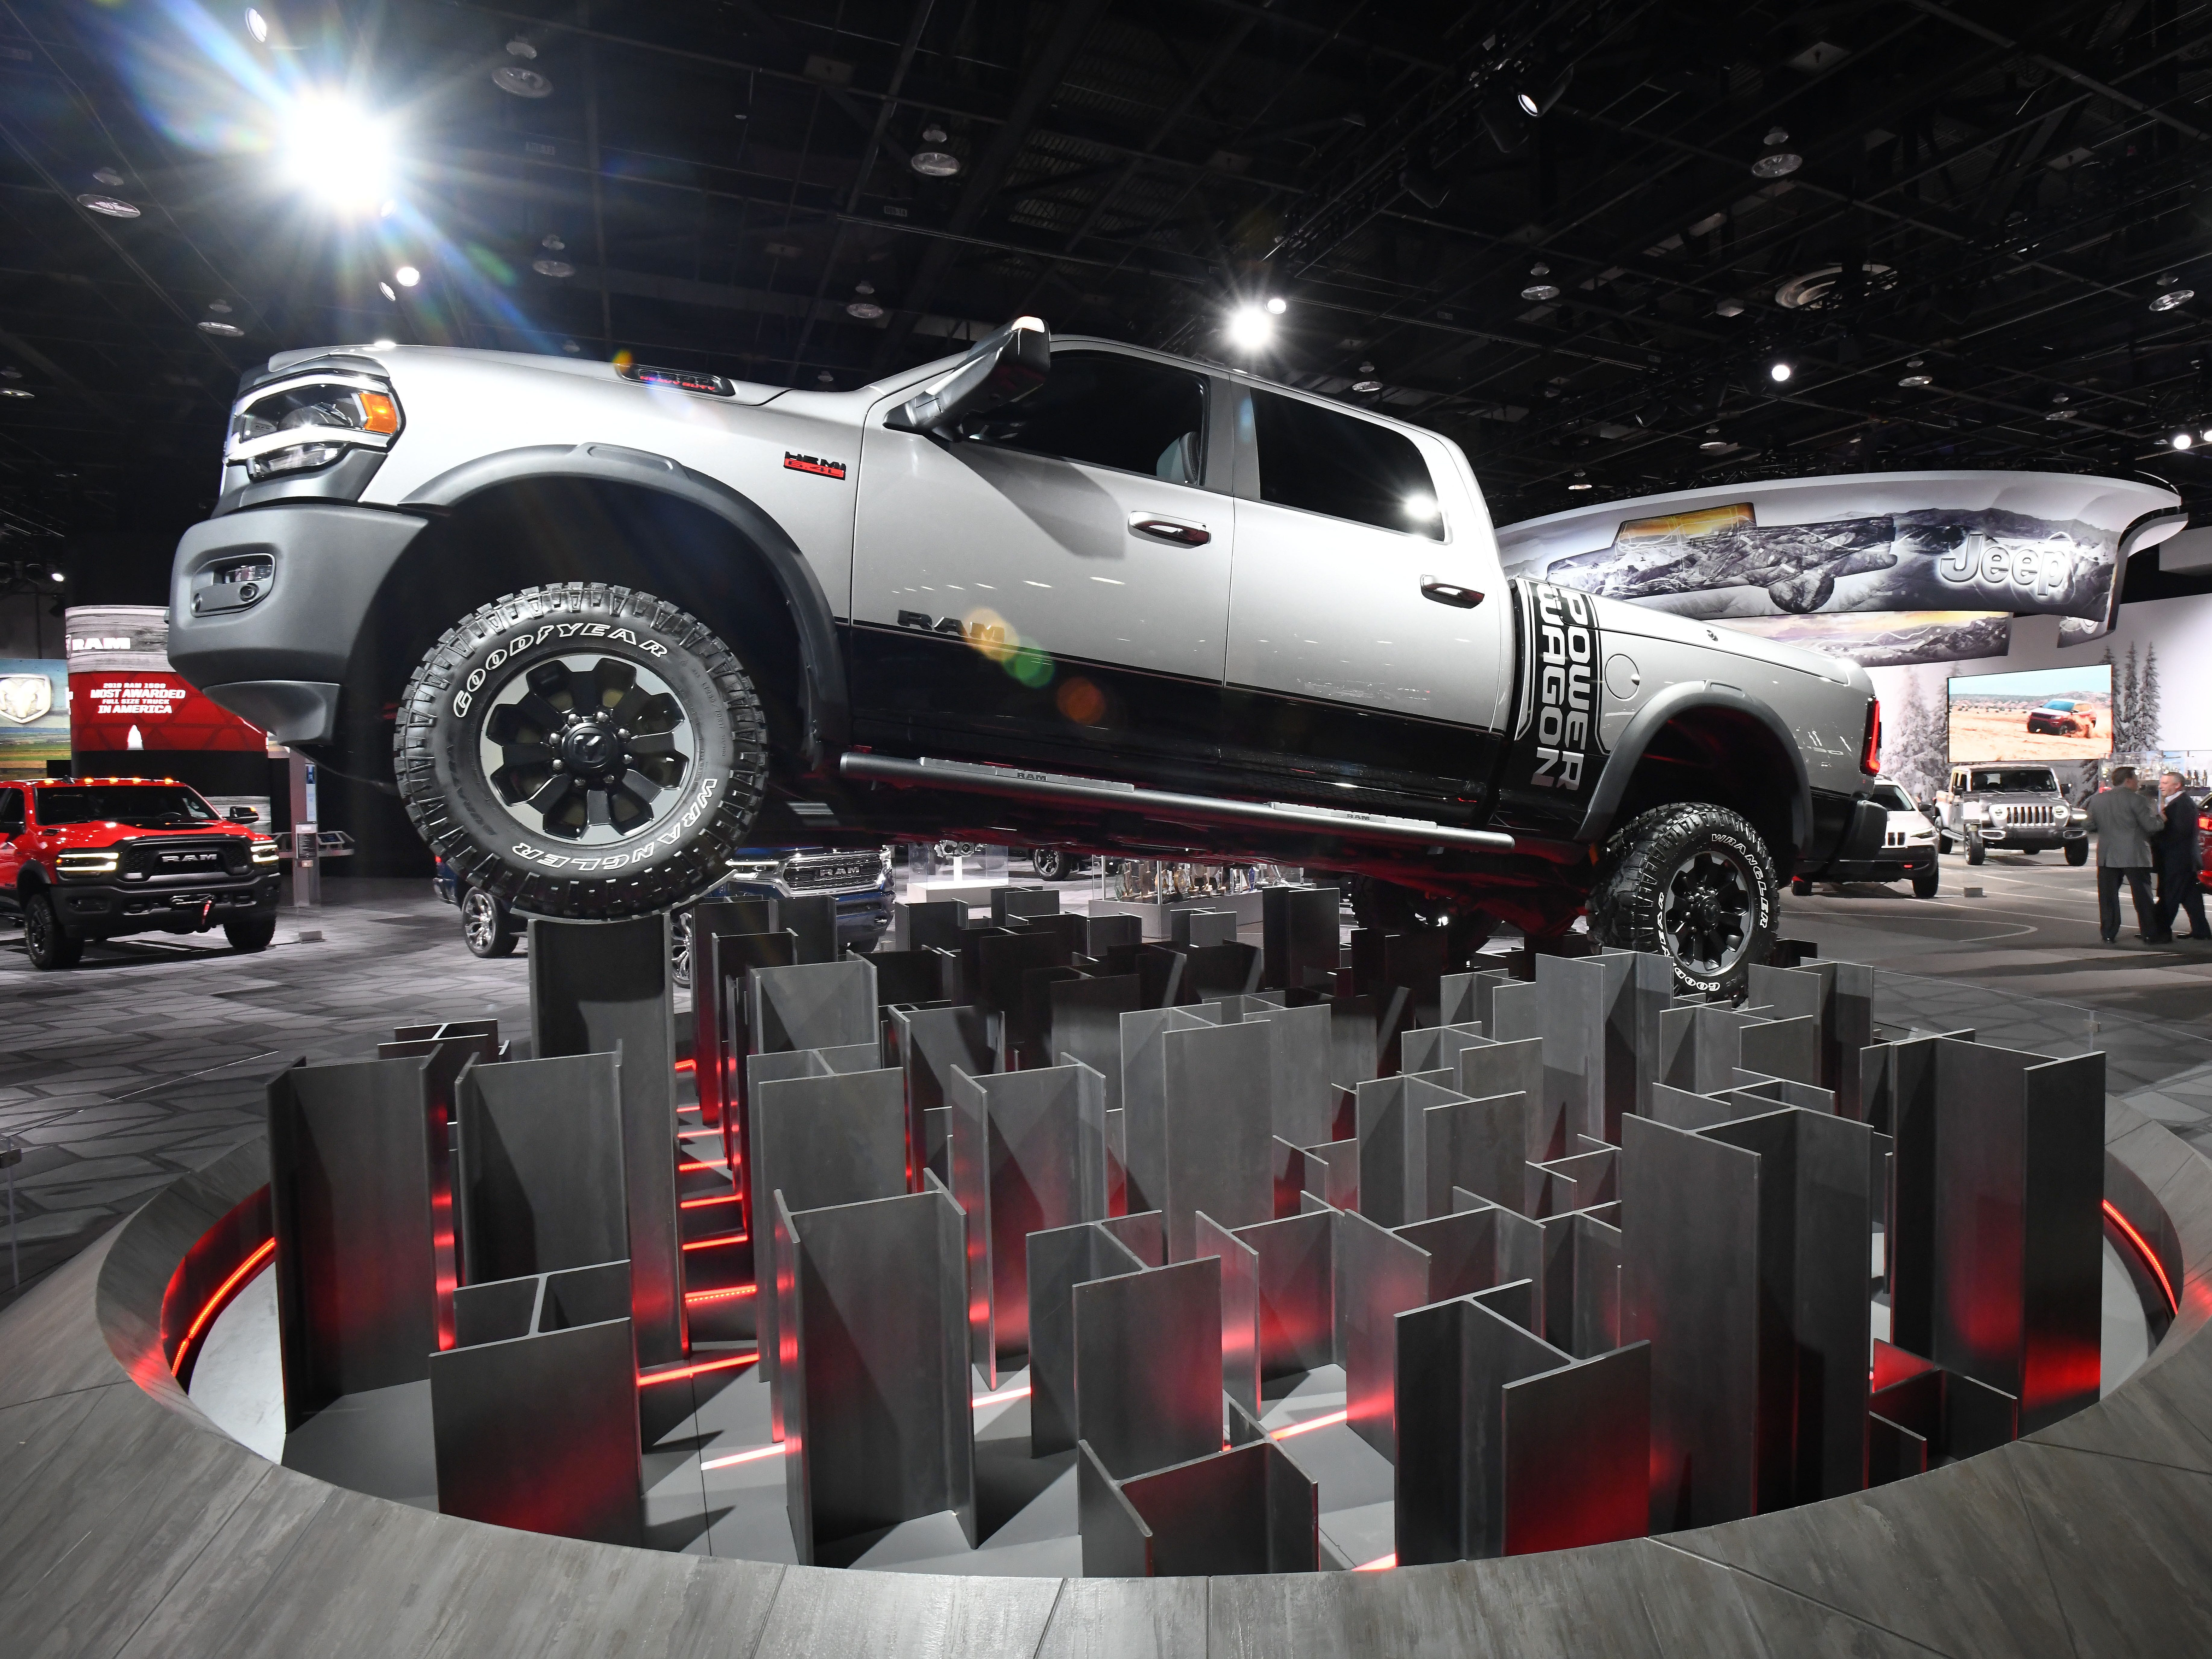 A Ram 2500 Power Wagon is on display during media preview days at Cobo Center.